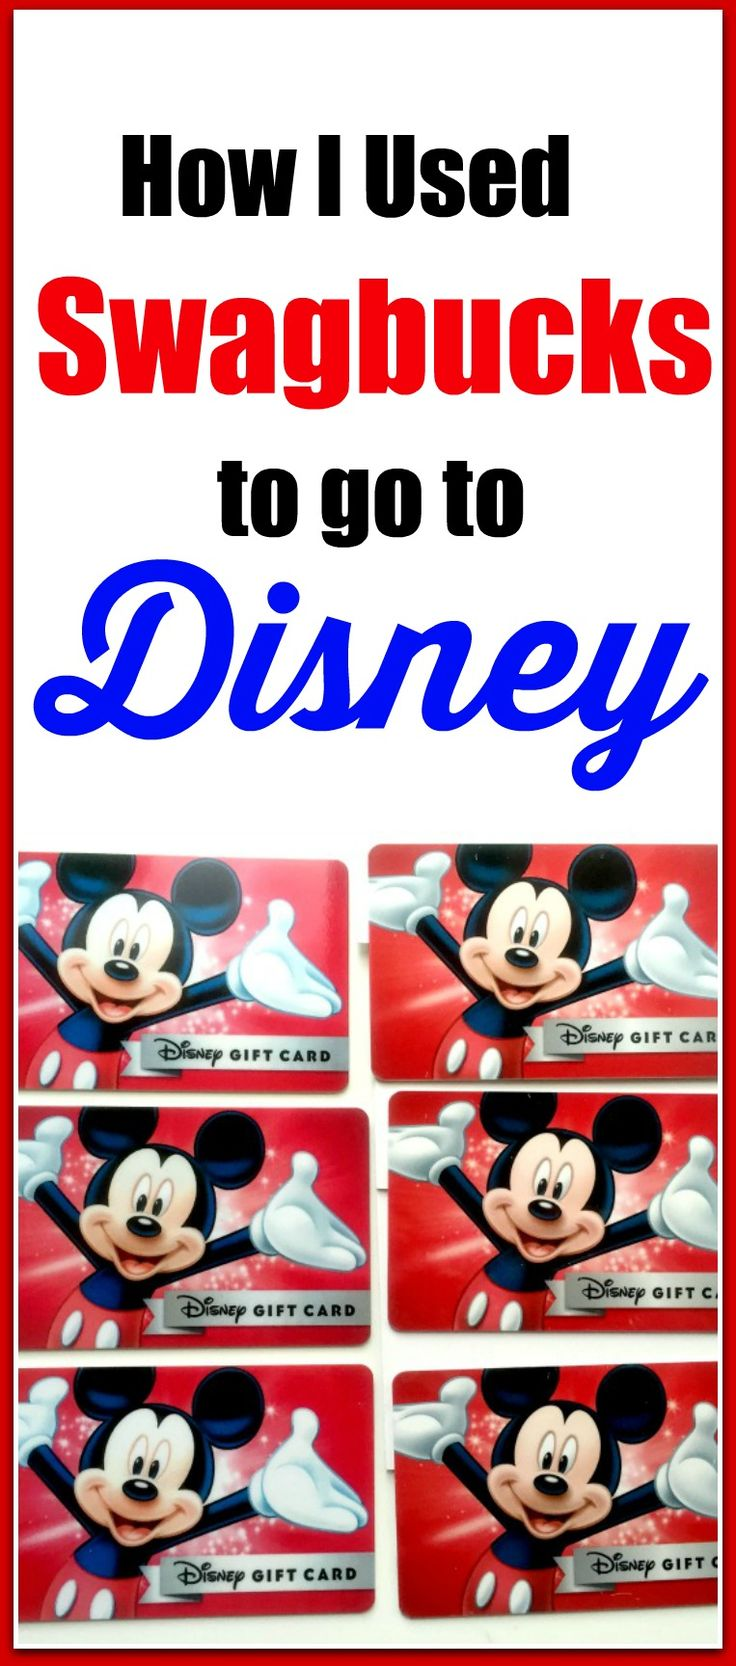 Are you planning a trip to Disney World? If so, here's a way you can earn Disney gift cards to spend at the parks, on your tickets, or your hotel. Click through to read more or pin now and read later.